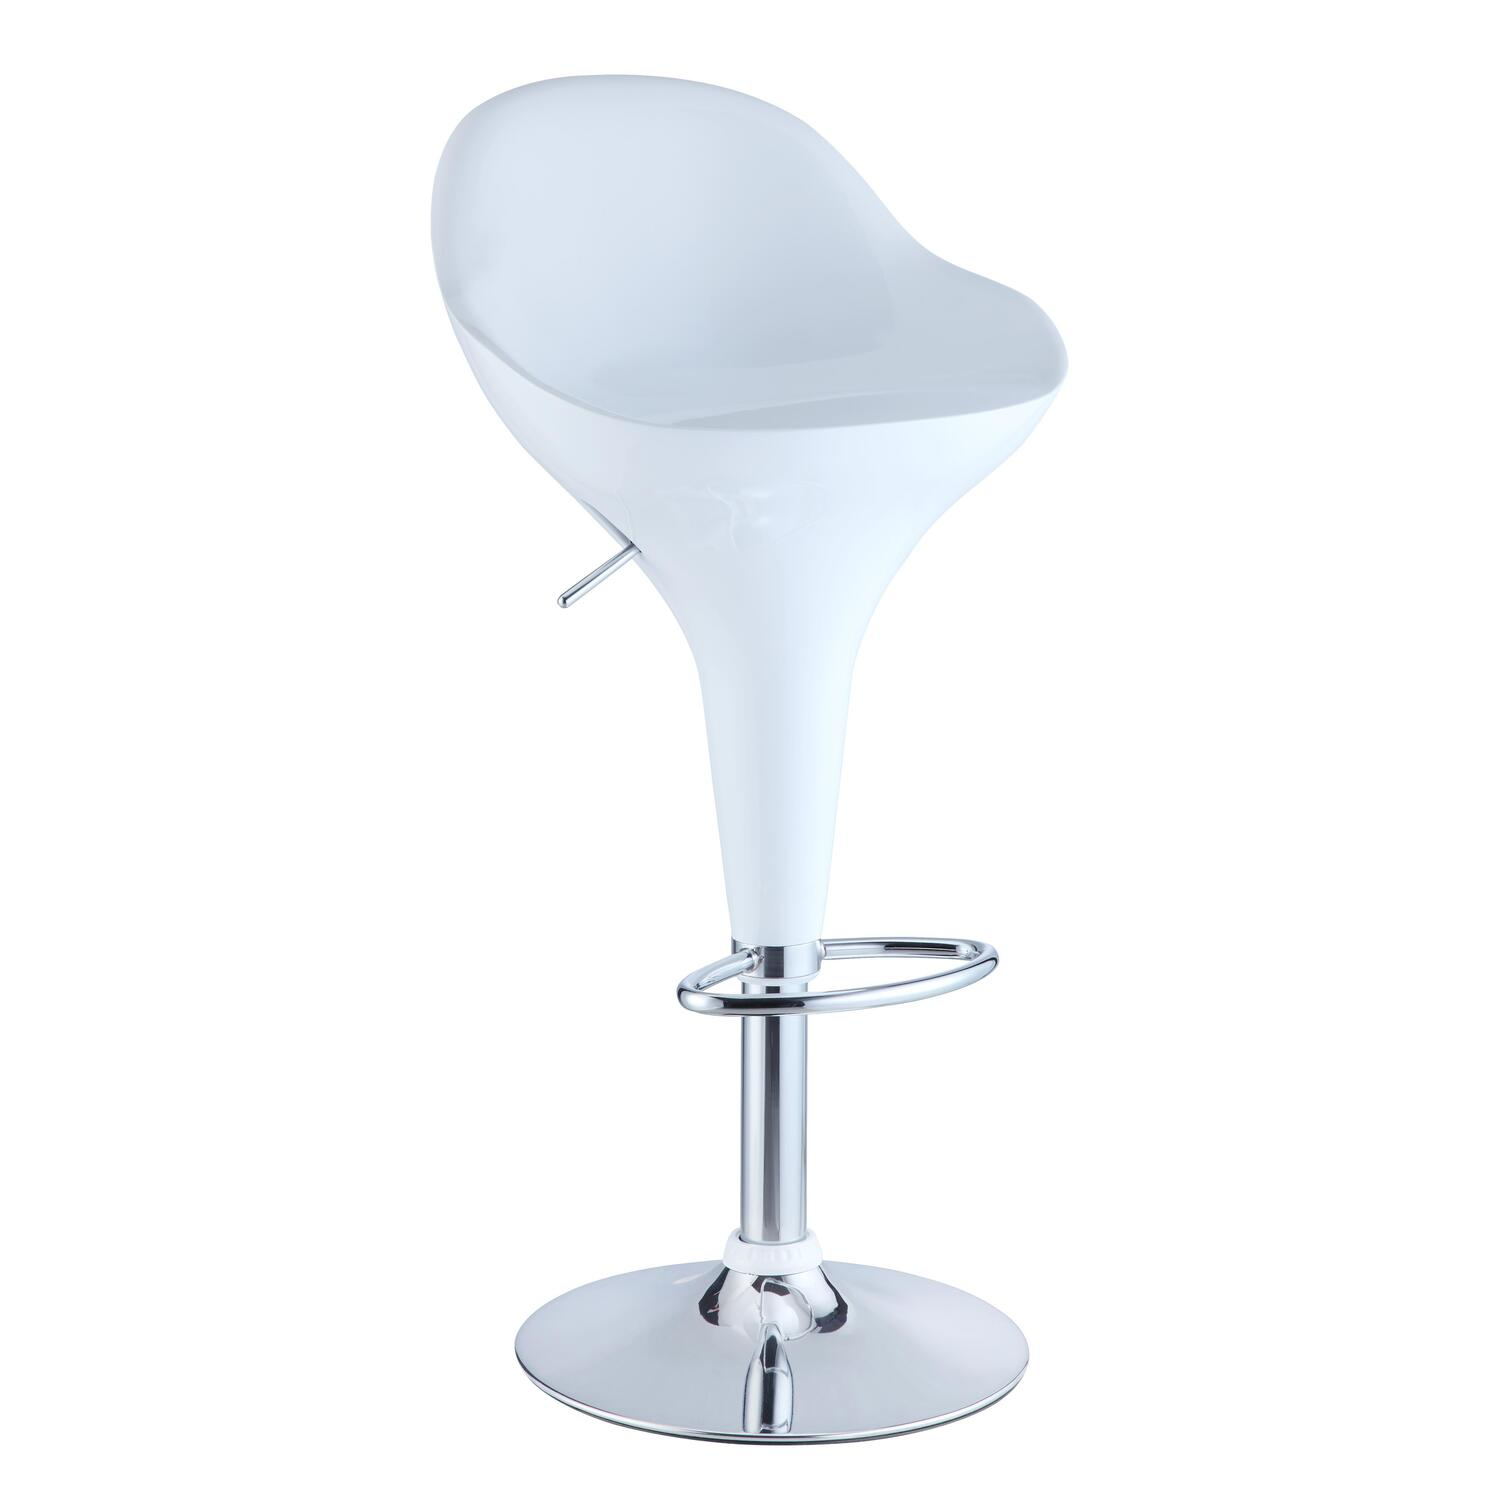 Retro Adjustable Height Bar Stool 89 00 Ojcommerce